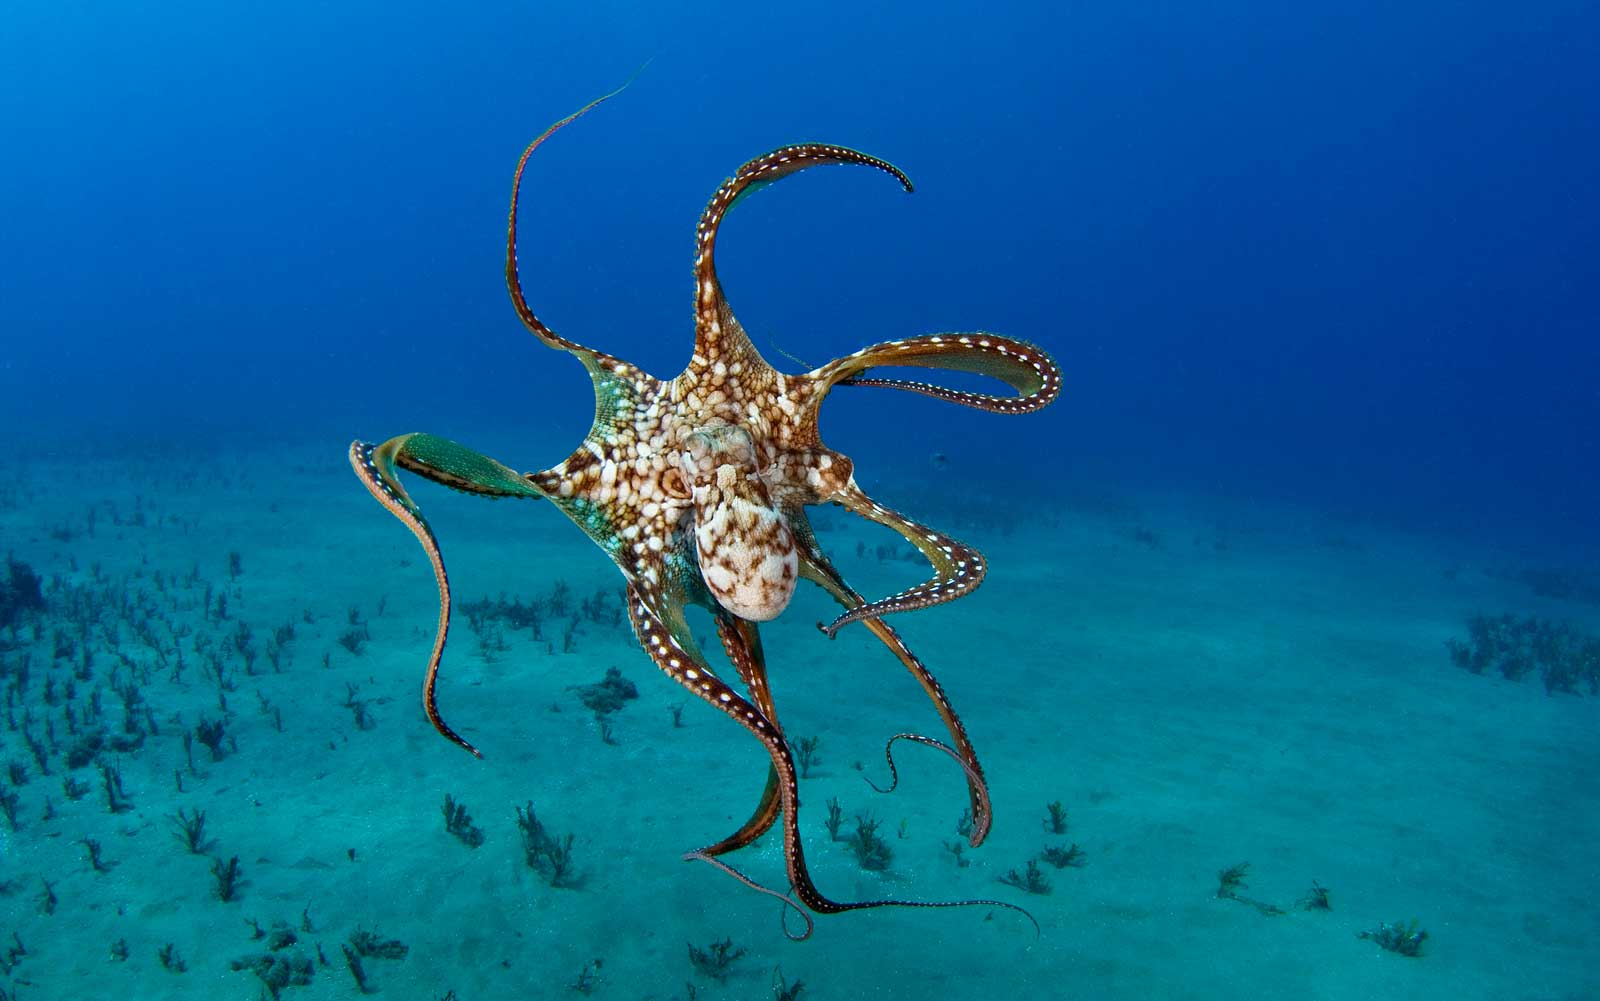 Scientists Find Ecstasy Makes Octopuses 'Gentle and Cuddly'